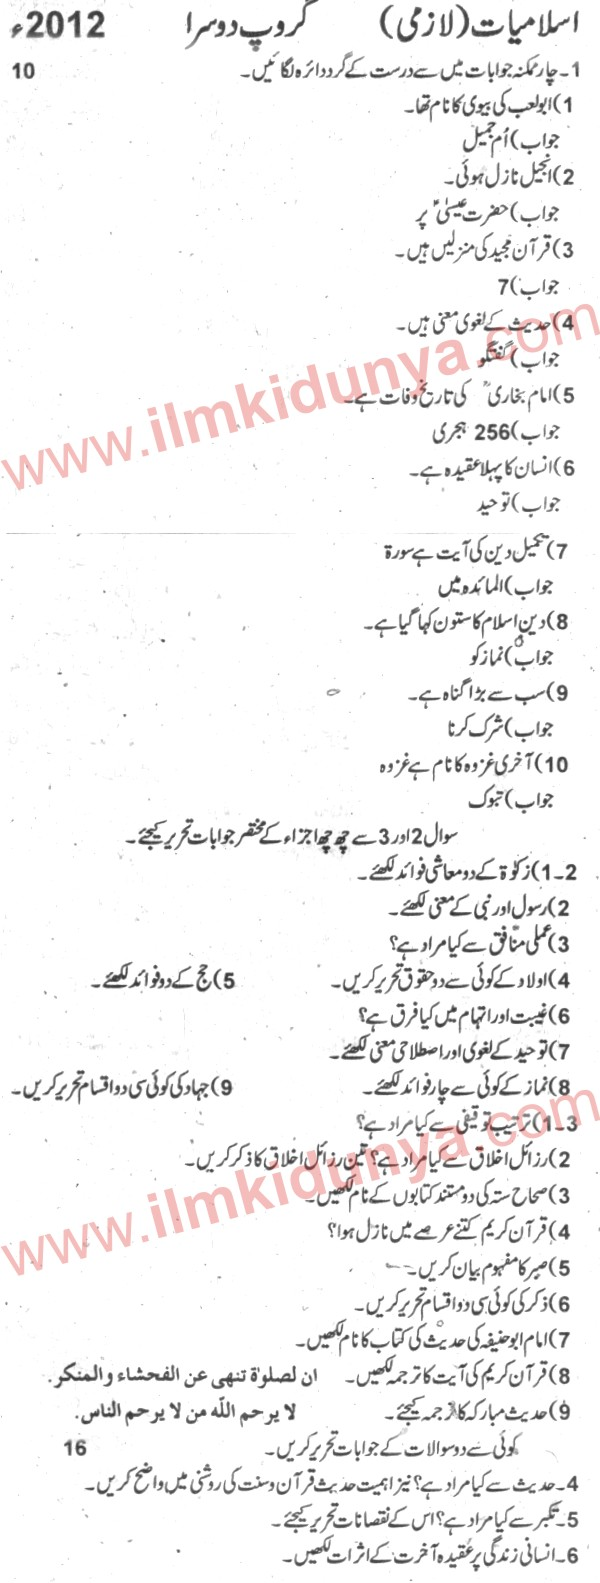 intermediate past papers rawalpindi Buy online in pakistan past examination papers 9th class 1st year inter (old 8  years papers) of class 9th of the rawalpindi board for past 10 year art subject.